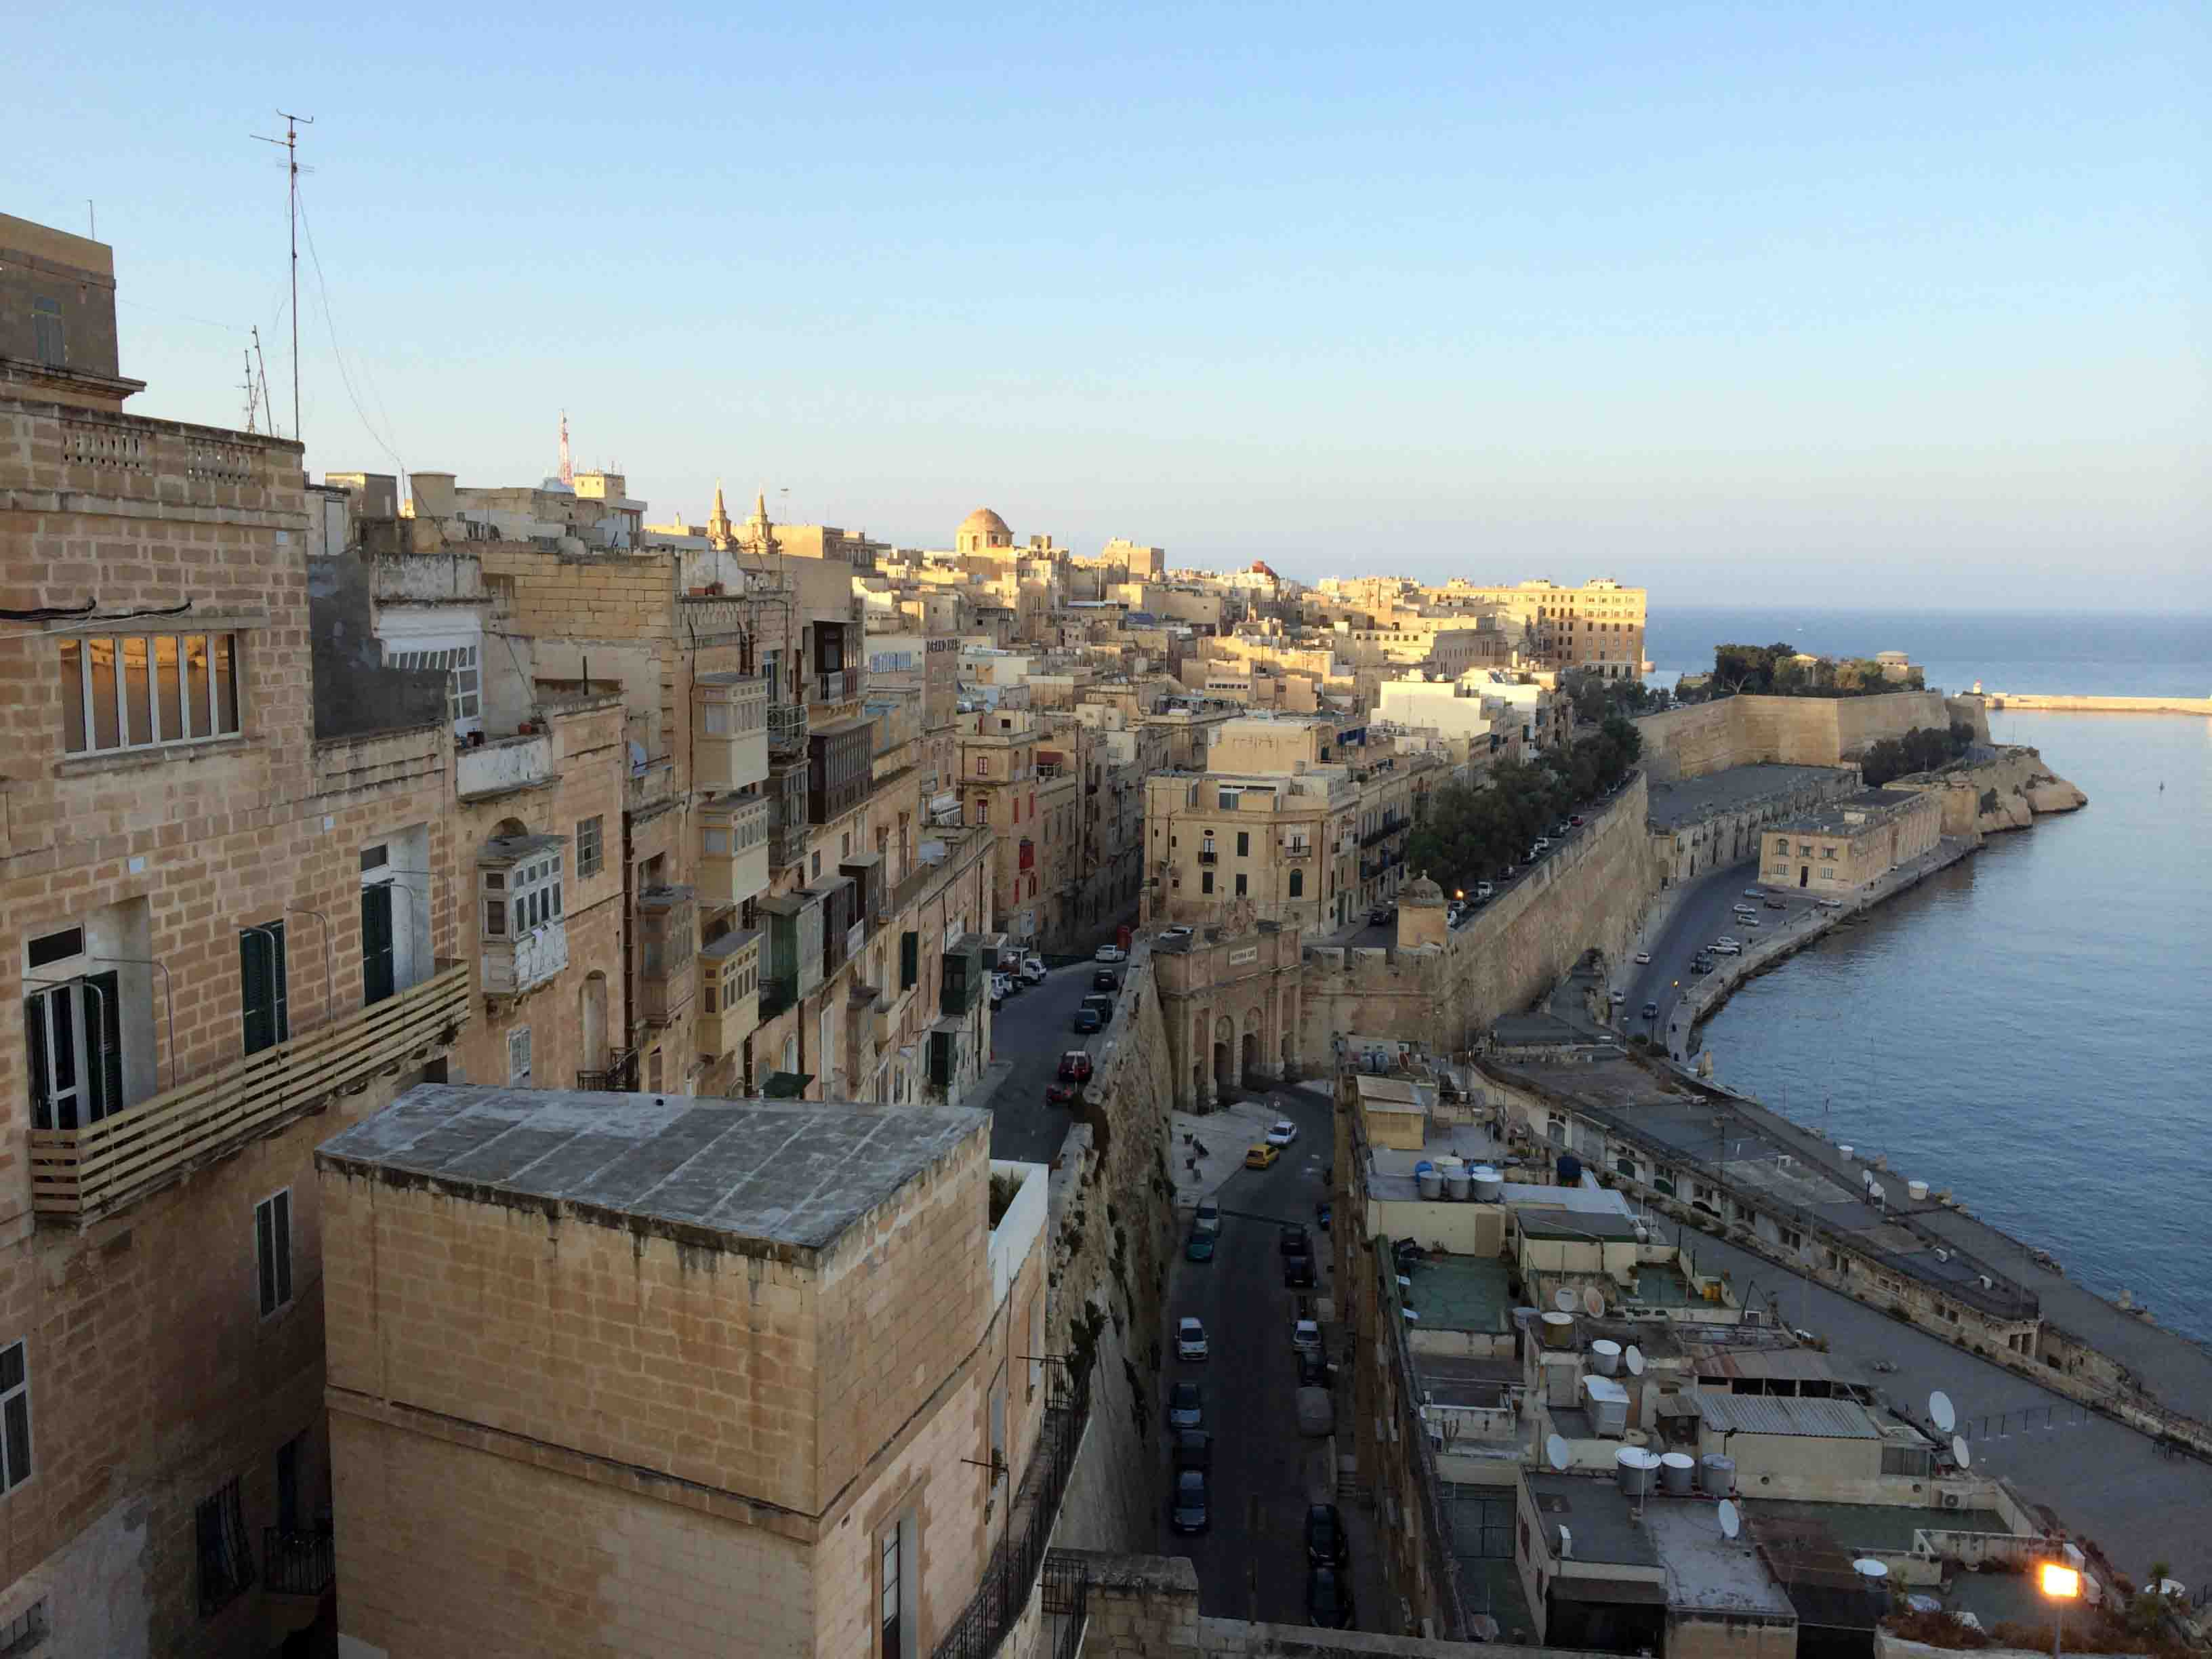 Cathedrals, Segways & Sailing Yachts in Malta | Stop ...